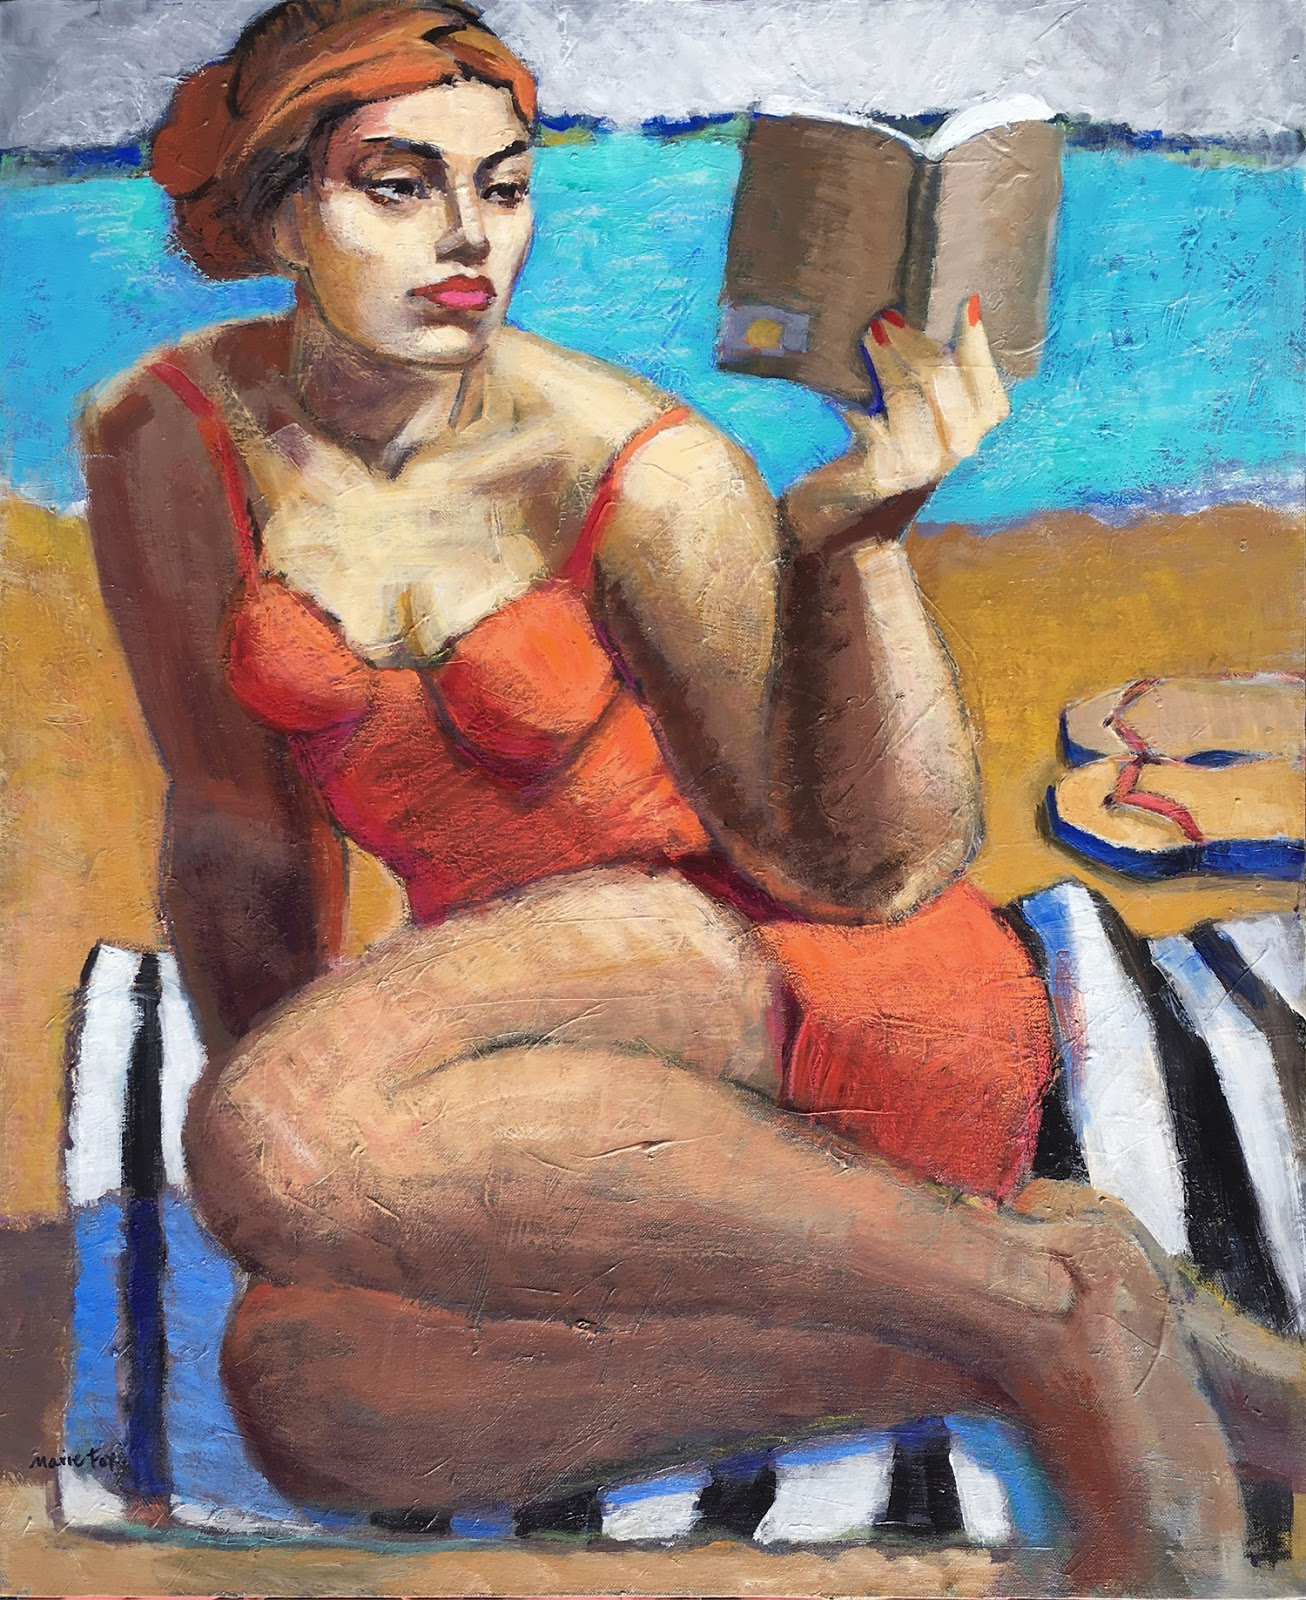 A Summer Read Woman Reading Book Beach Ocean Figurative Study Abstract Artist Female Figuration Zaftig Bathing Suit After Swim